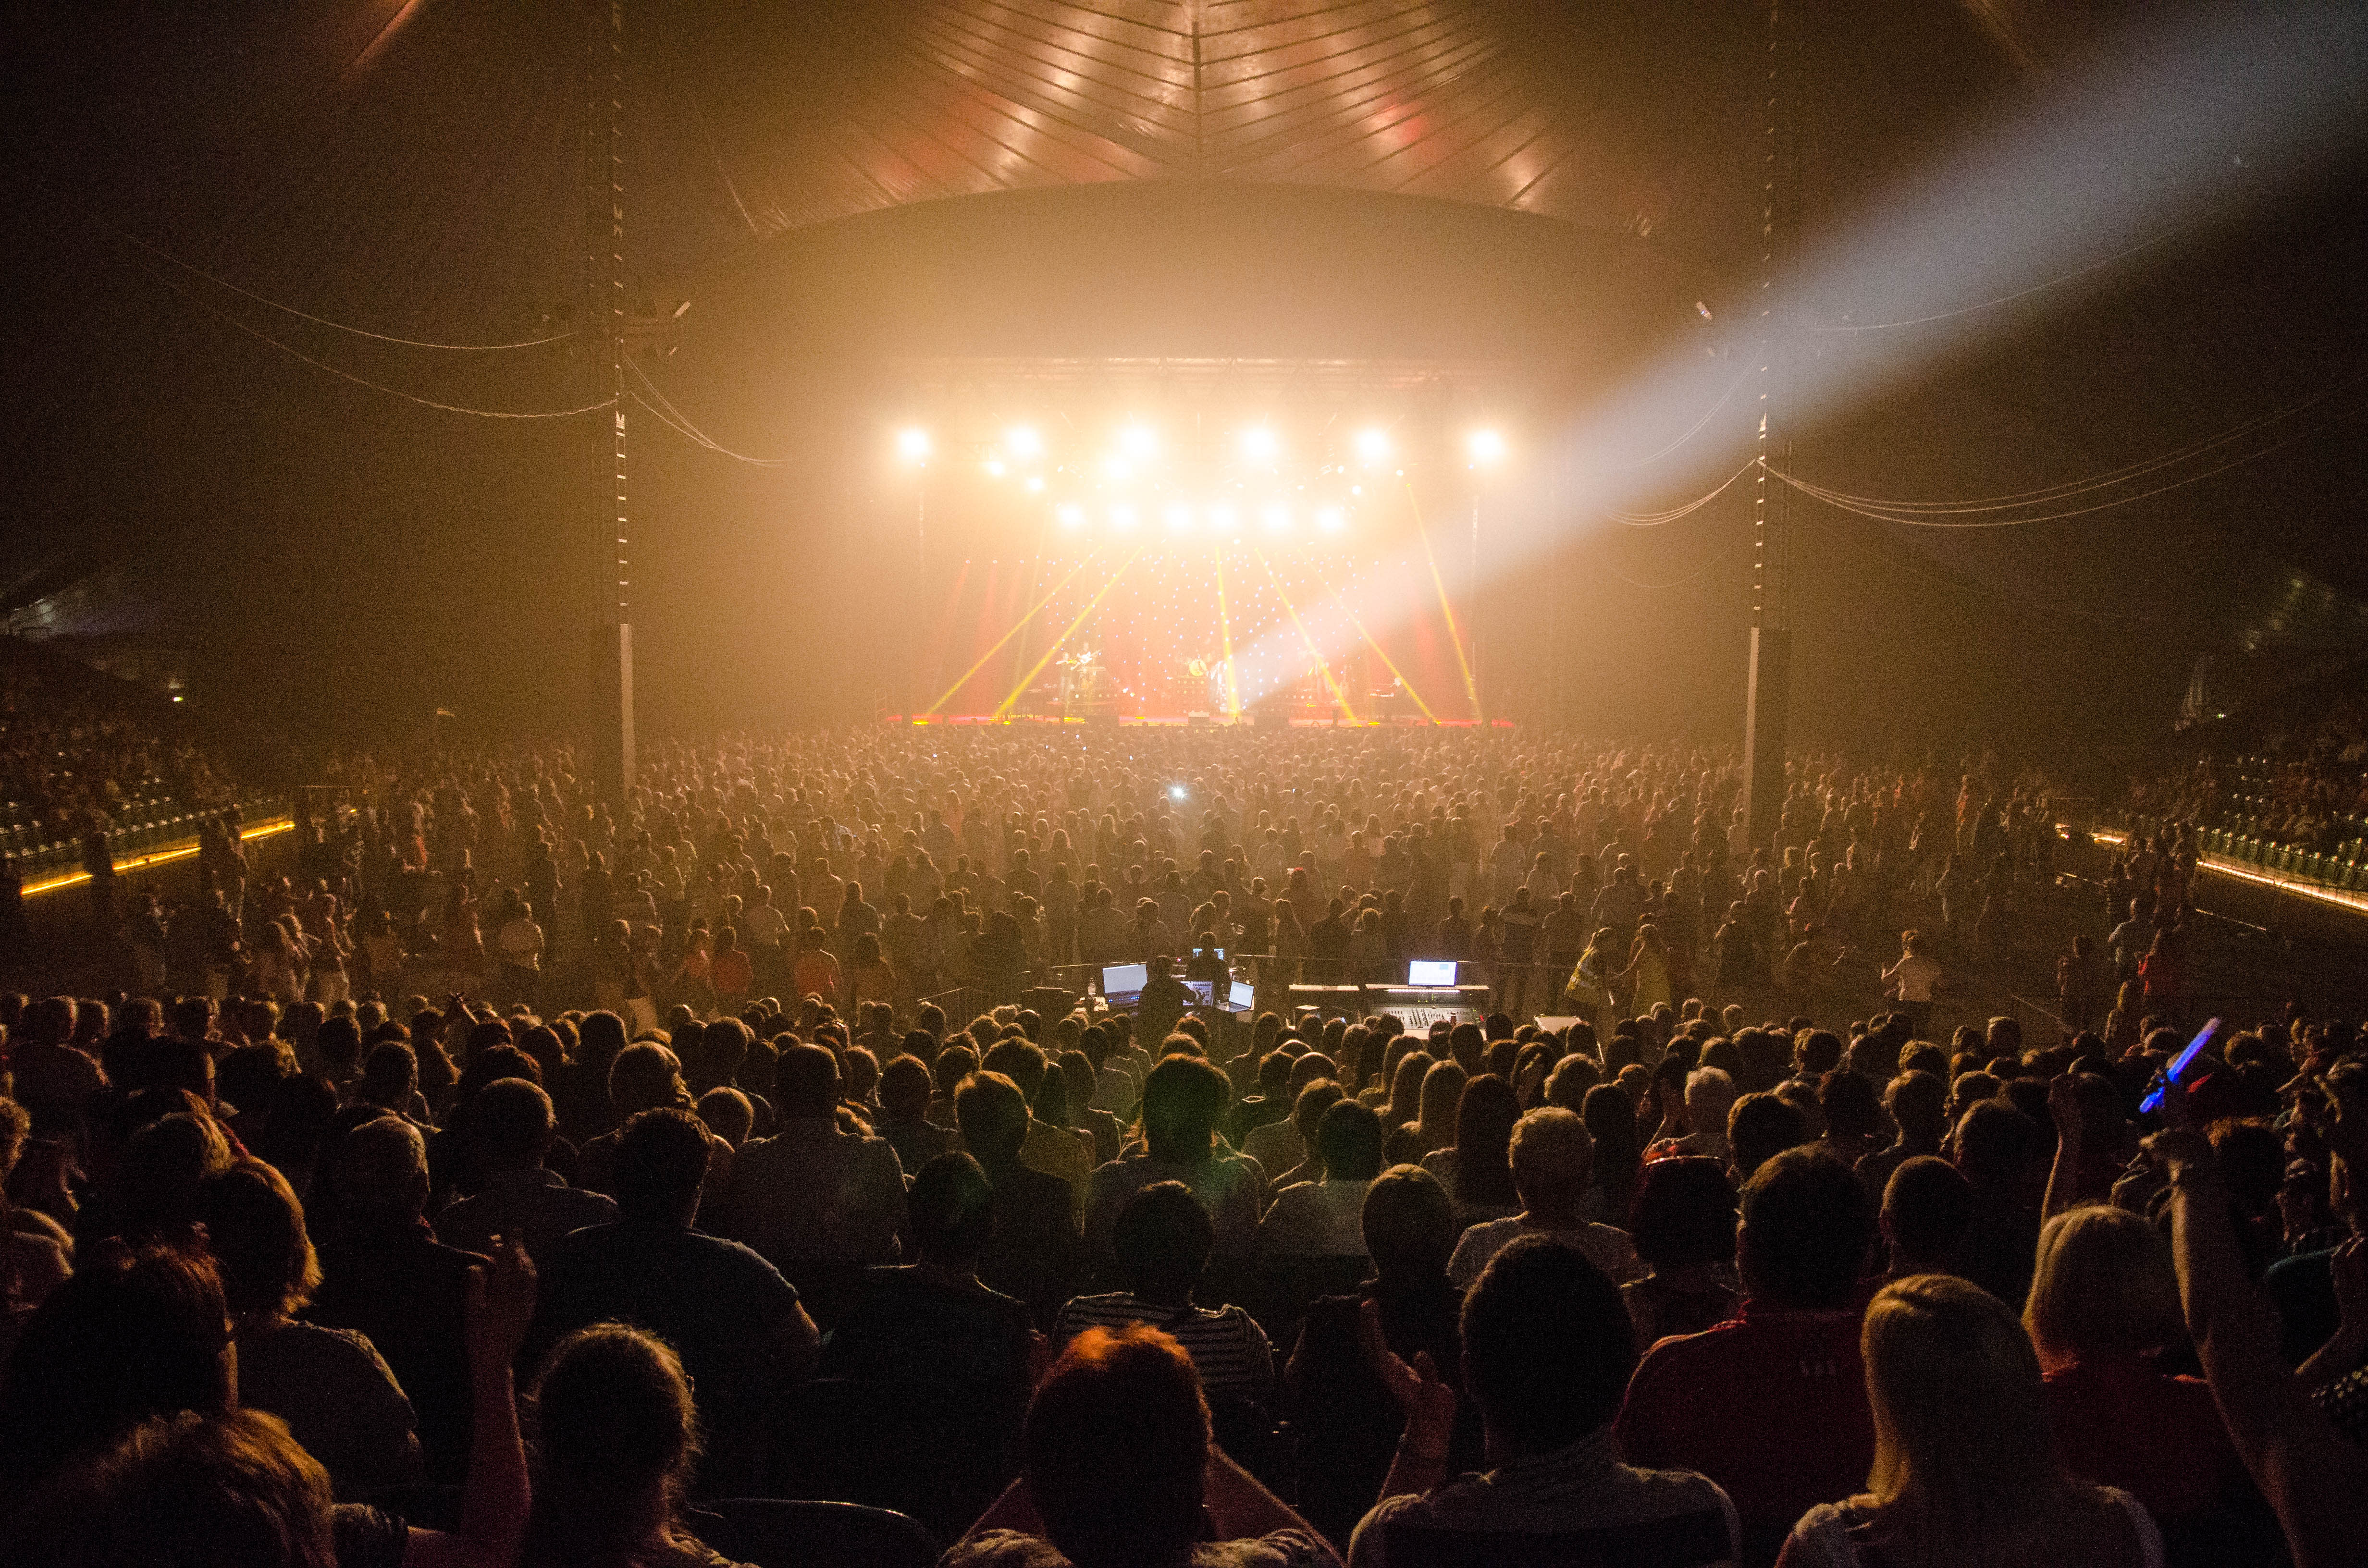 nathan-carter-at-the-marquee-cork-by-sean-smyth-15-6-14-37-of-55